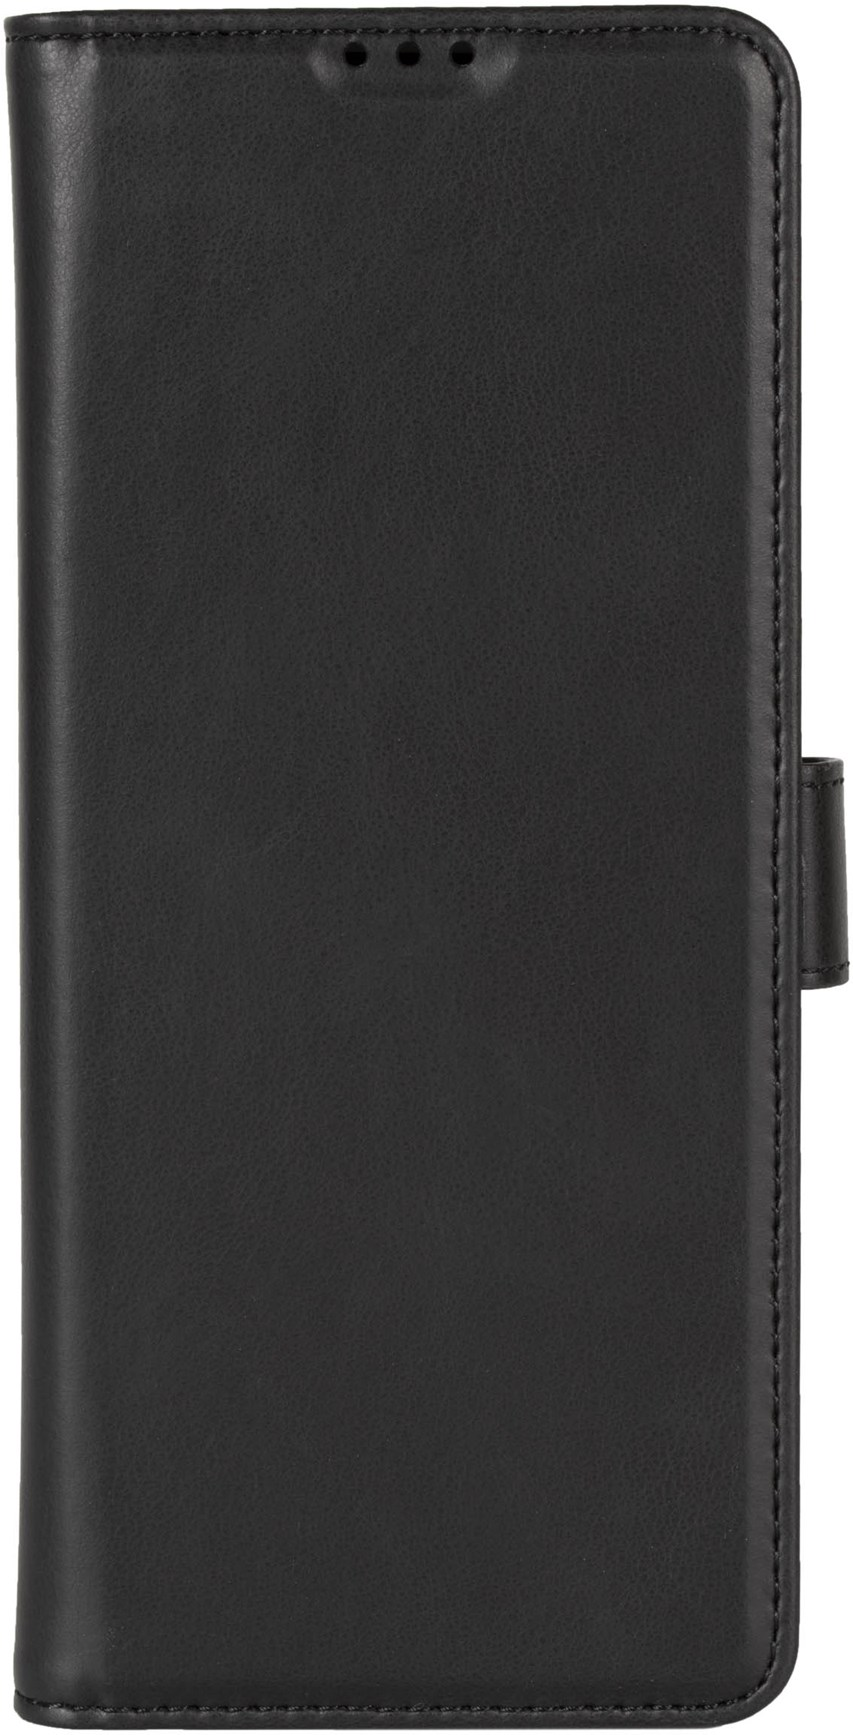 Krusell Essentials Phonewallet Sony Xperia 1 II Black